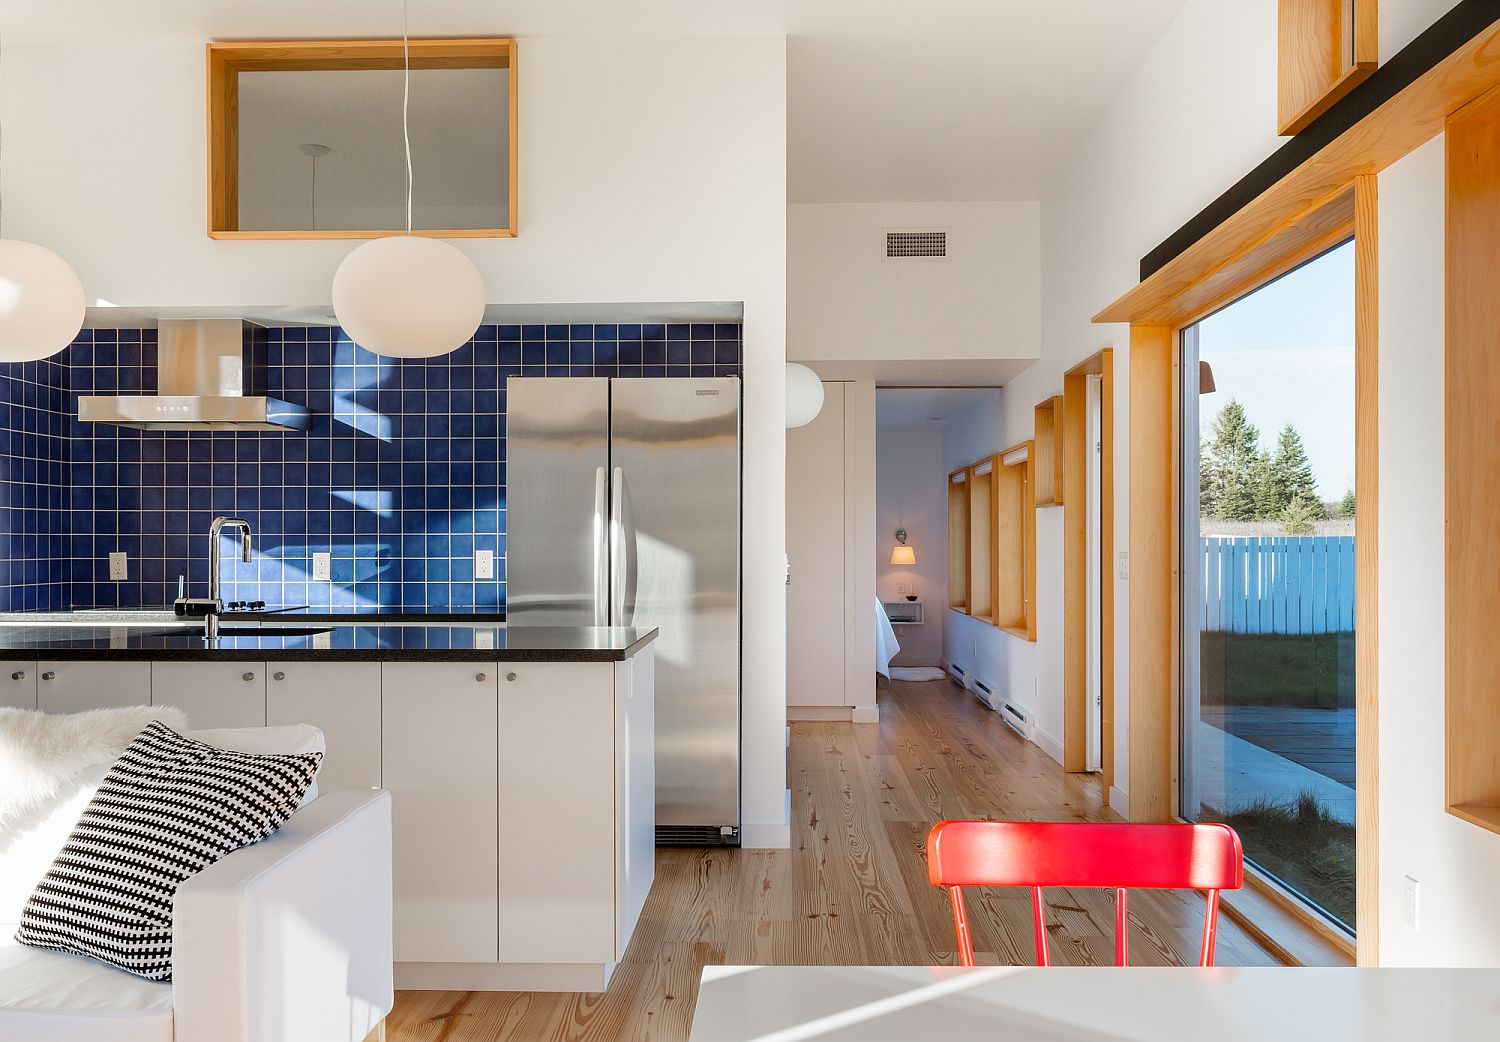 Blue-tiled-backsplash-give-the-kitchen-an-identity-of-its-own-here